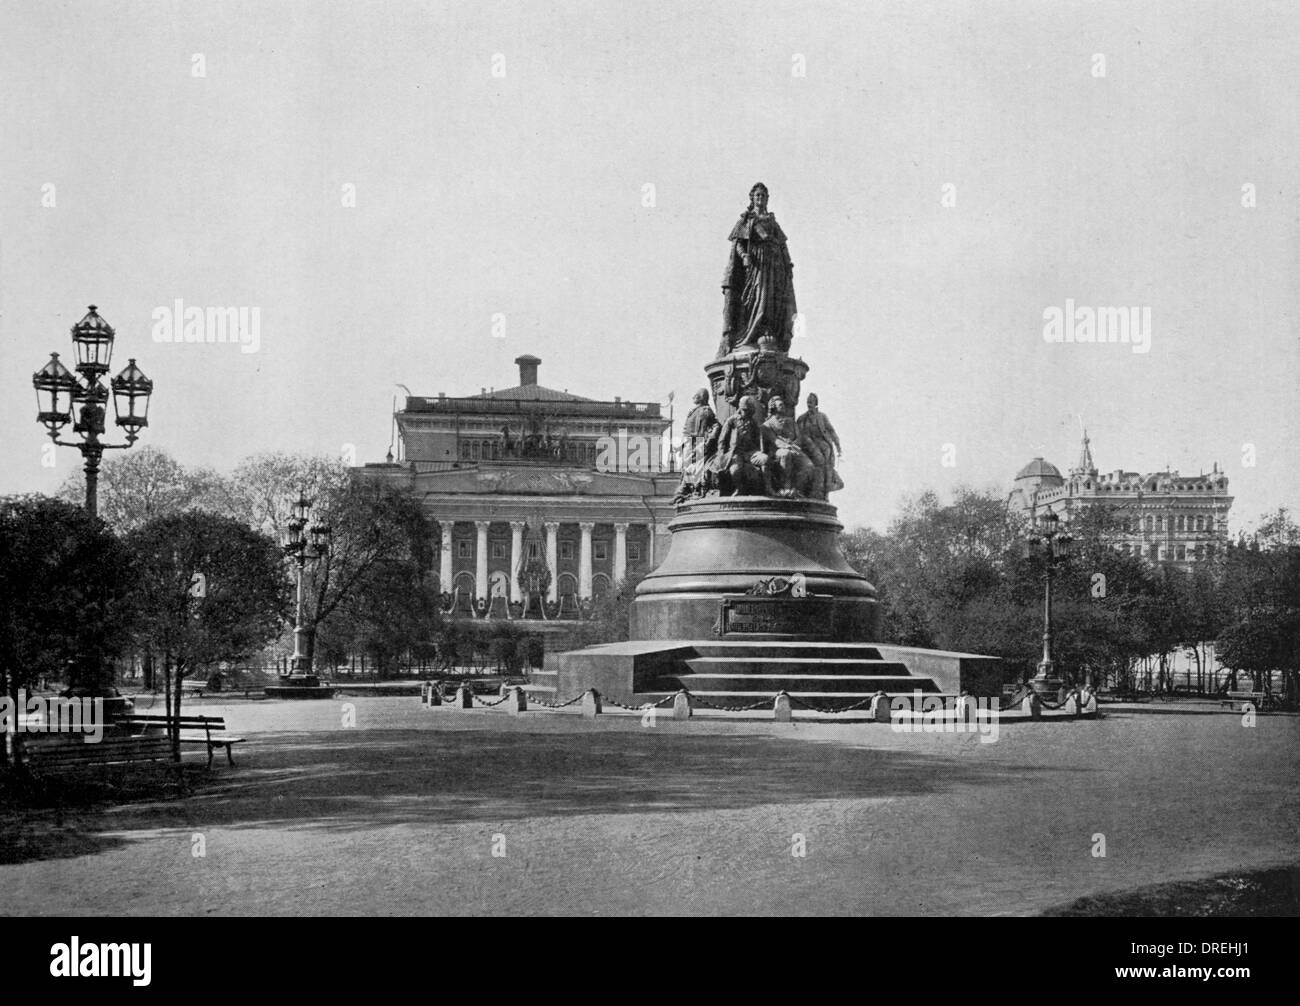 Catherine the Great Monument, St Petersburg, Russia - Stock Image